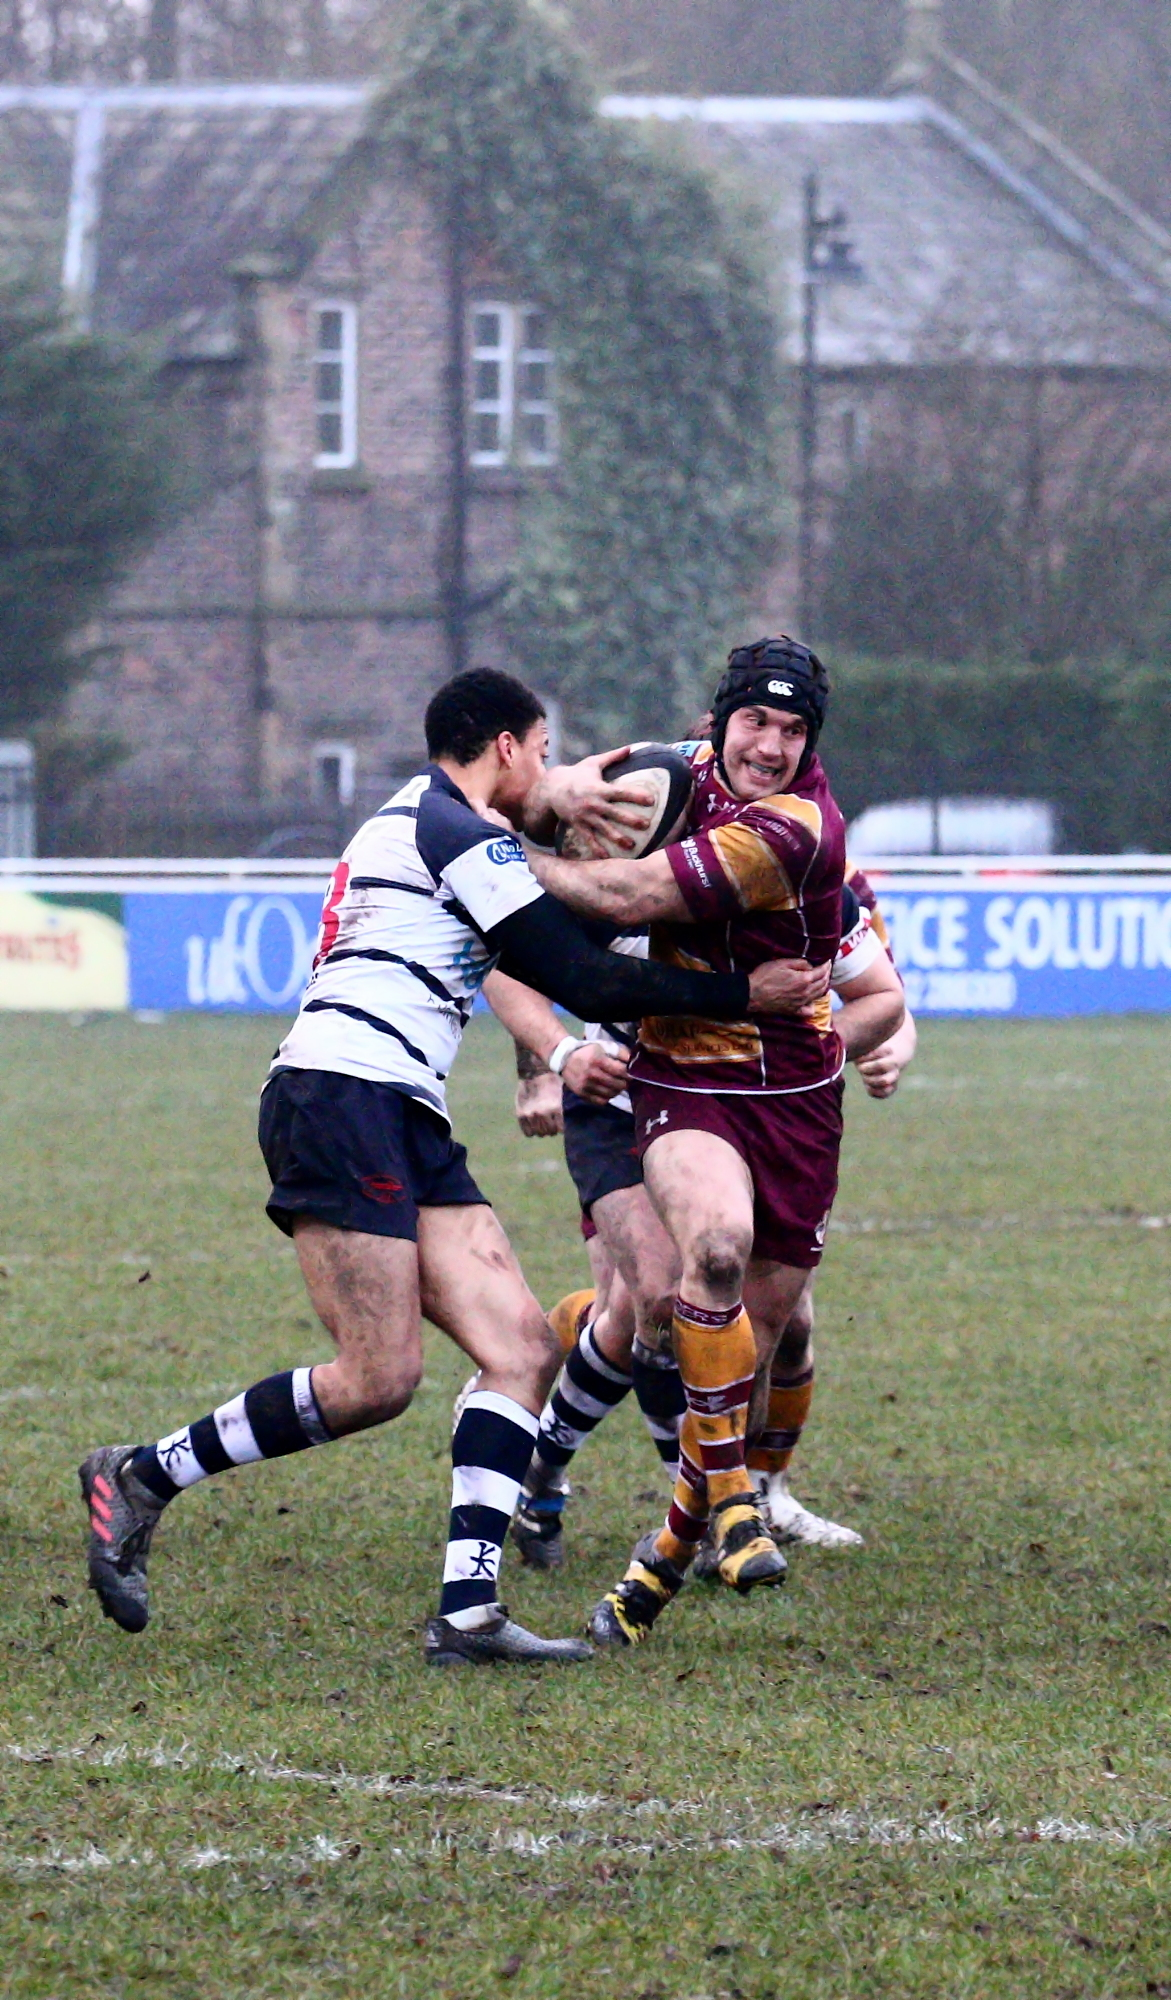 Max Skofic, pictured in Sedgley's recent victory over Preston Grasshoppers, will be one of the key men in the club's charge for promotion in the second half of the season. Pic: Chris Beirne